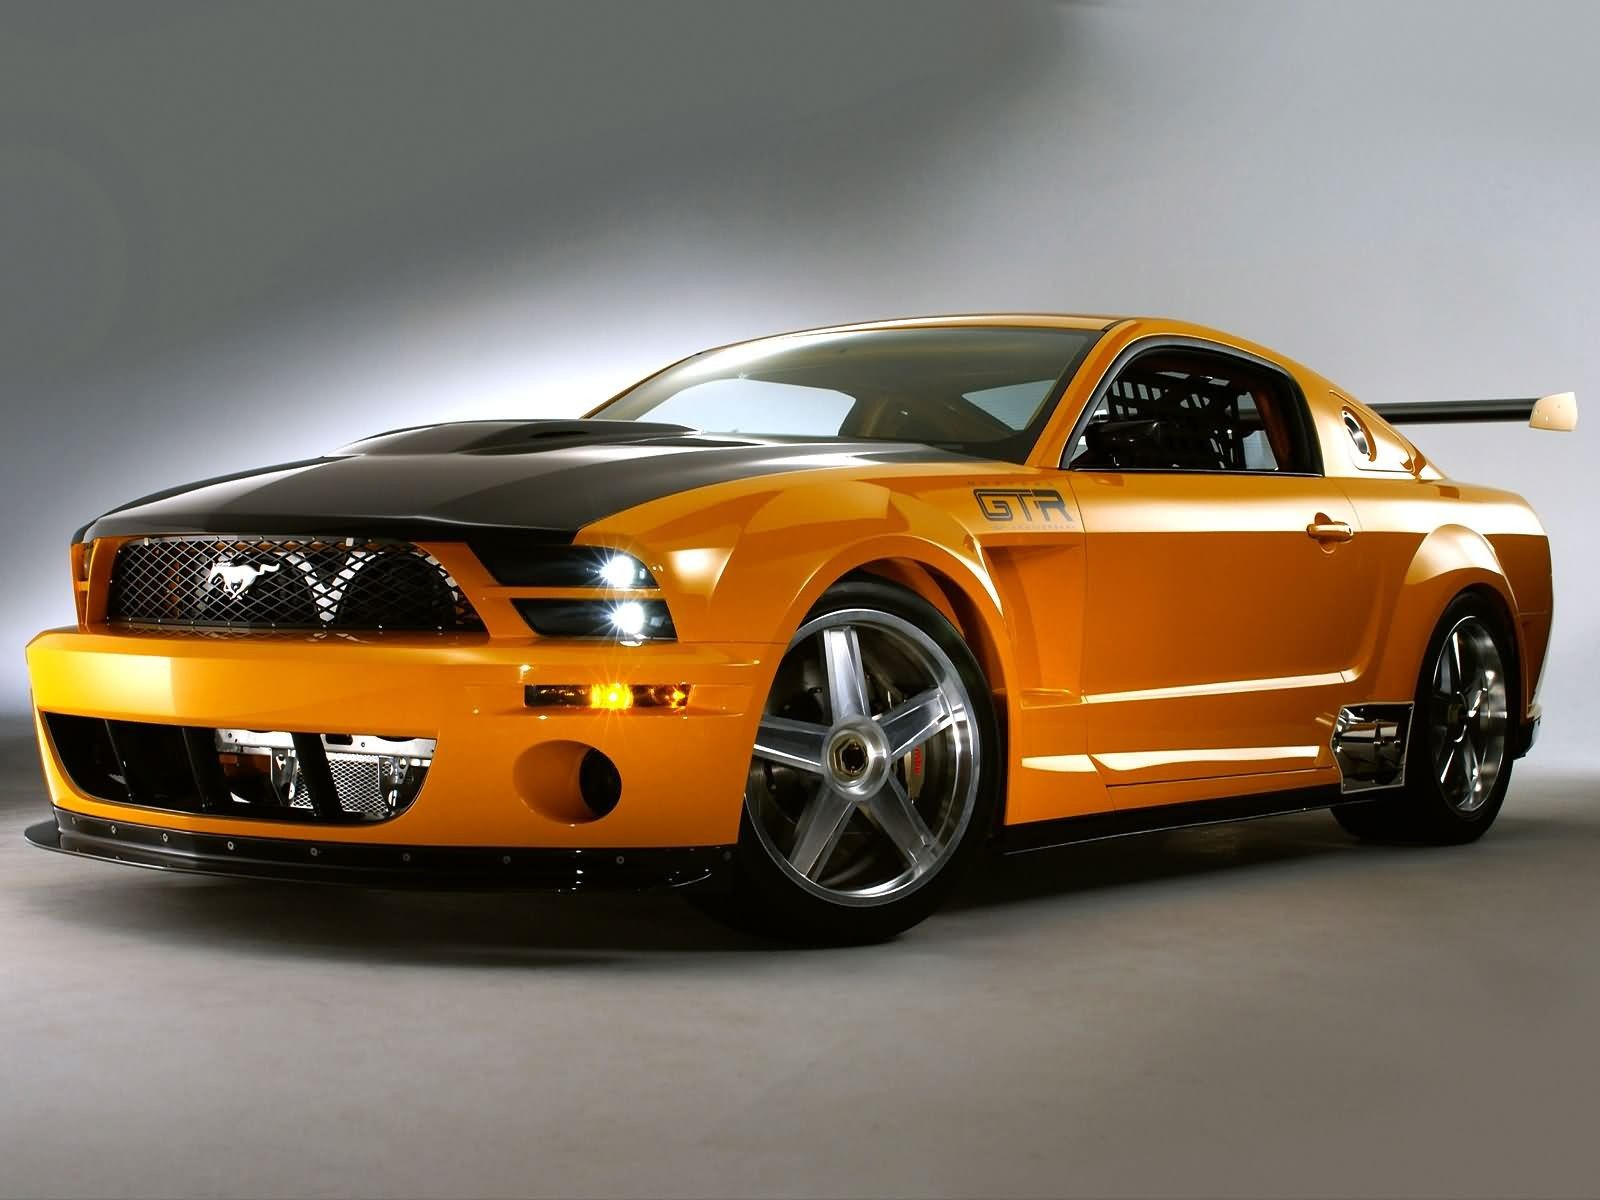 Ford Mustang Google Search Mustang Gtr Ford Mustang Gt Saleen Mustang